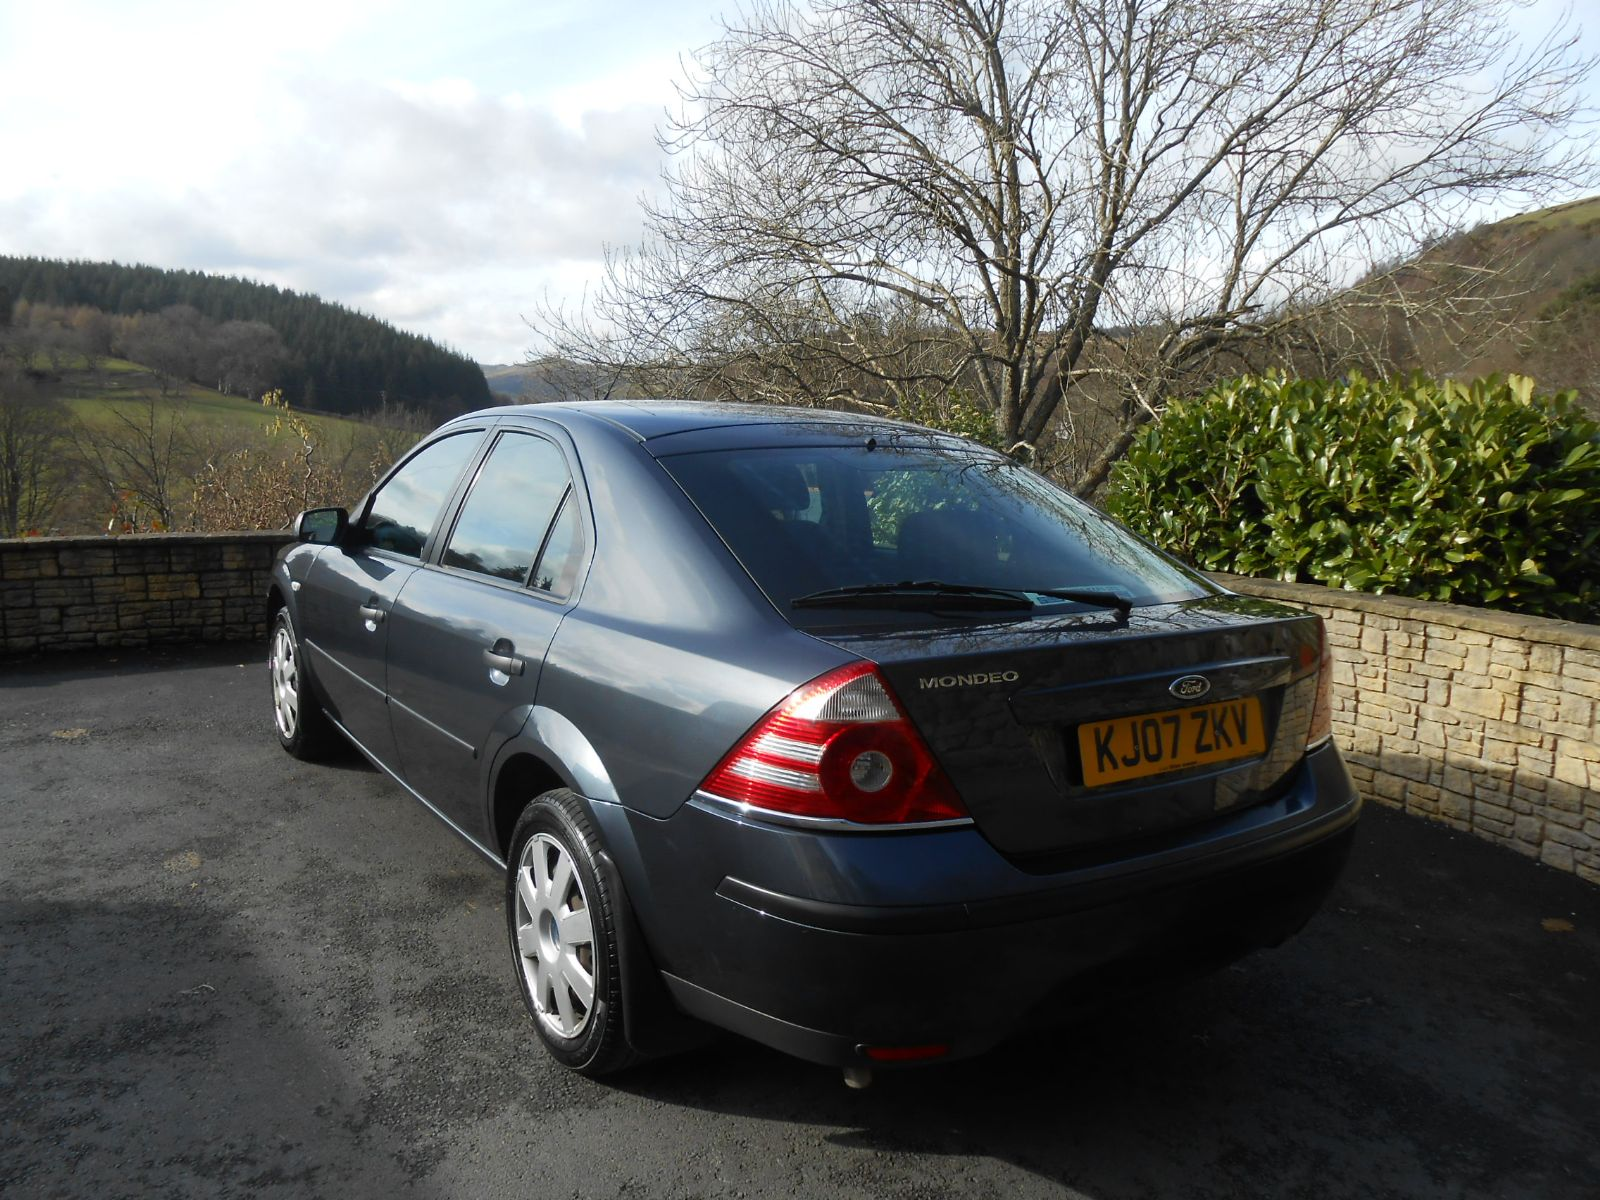 ford mondeo 1 8 lx car for sale llanidloes powys mid wales kevin jones cars used cars specialist. Black Bedroom Furniture Sets. Home Design Ideas